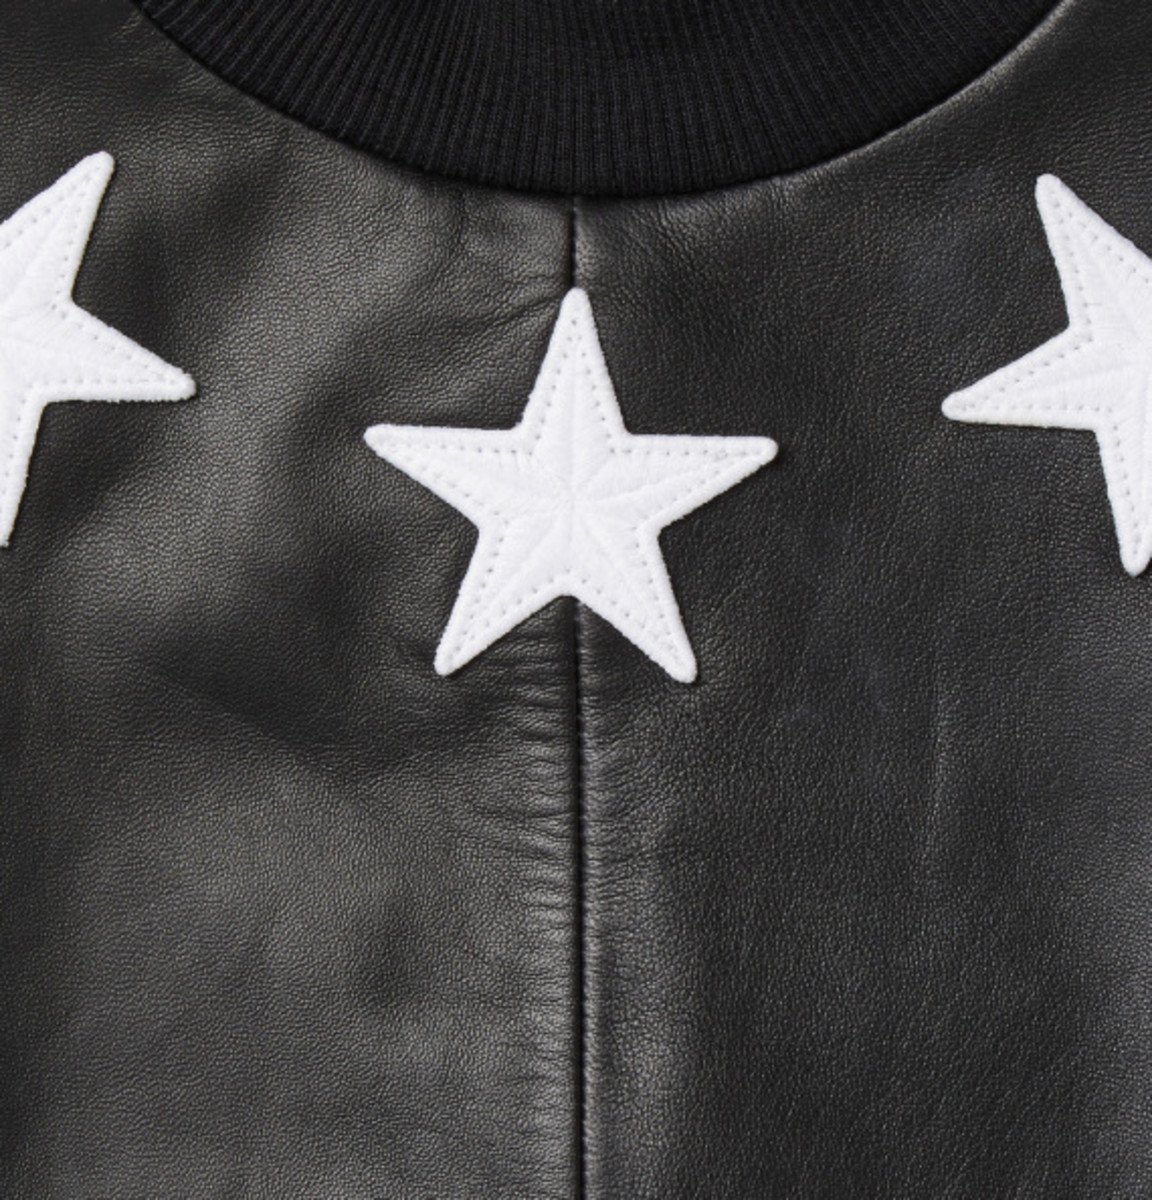 GIVENCHY - Star Detail Leather Sweatshirt with Jersey Back - 5